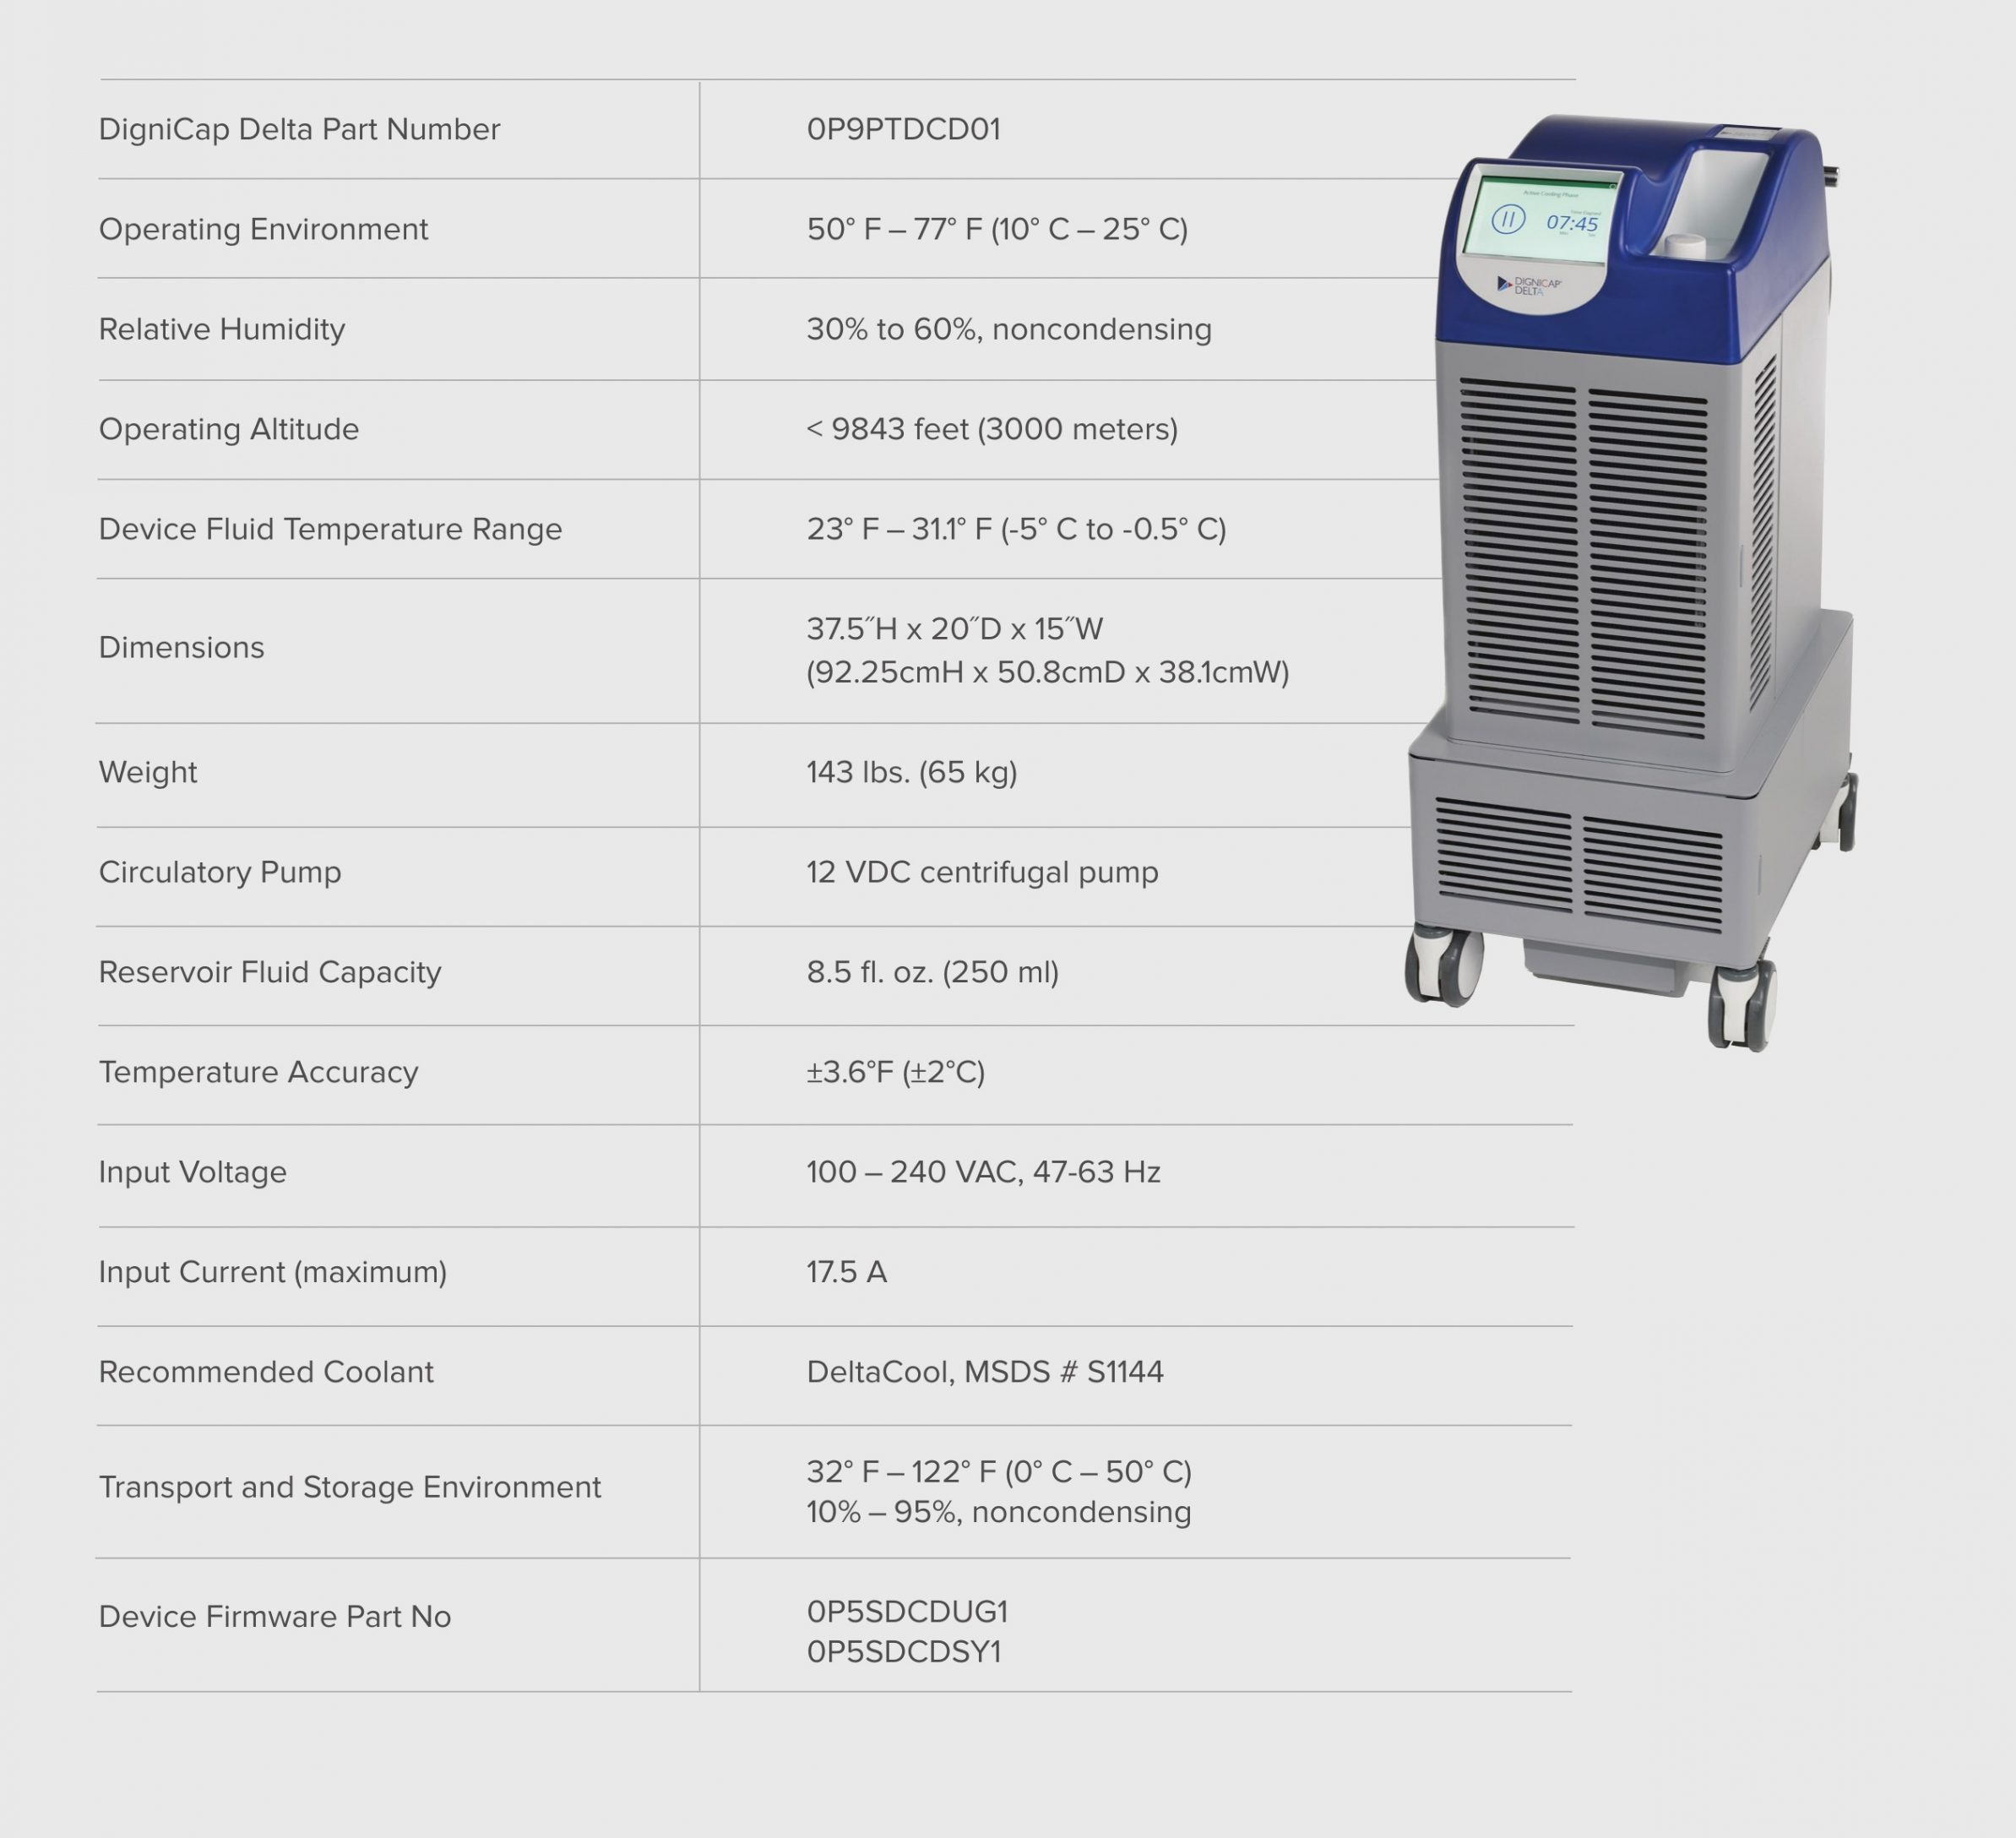 DigniCap Delta Technical Specifications